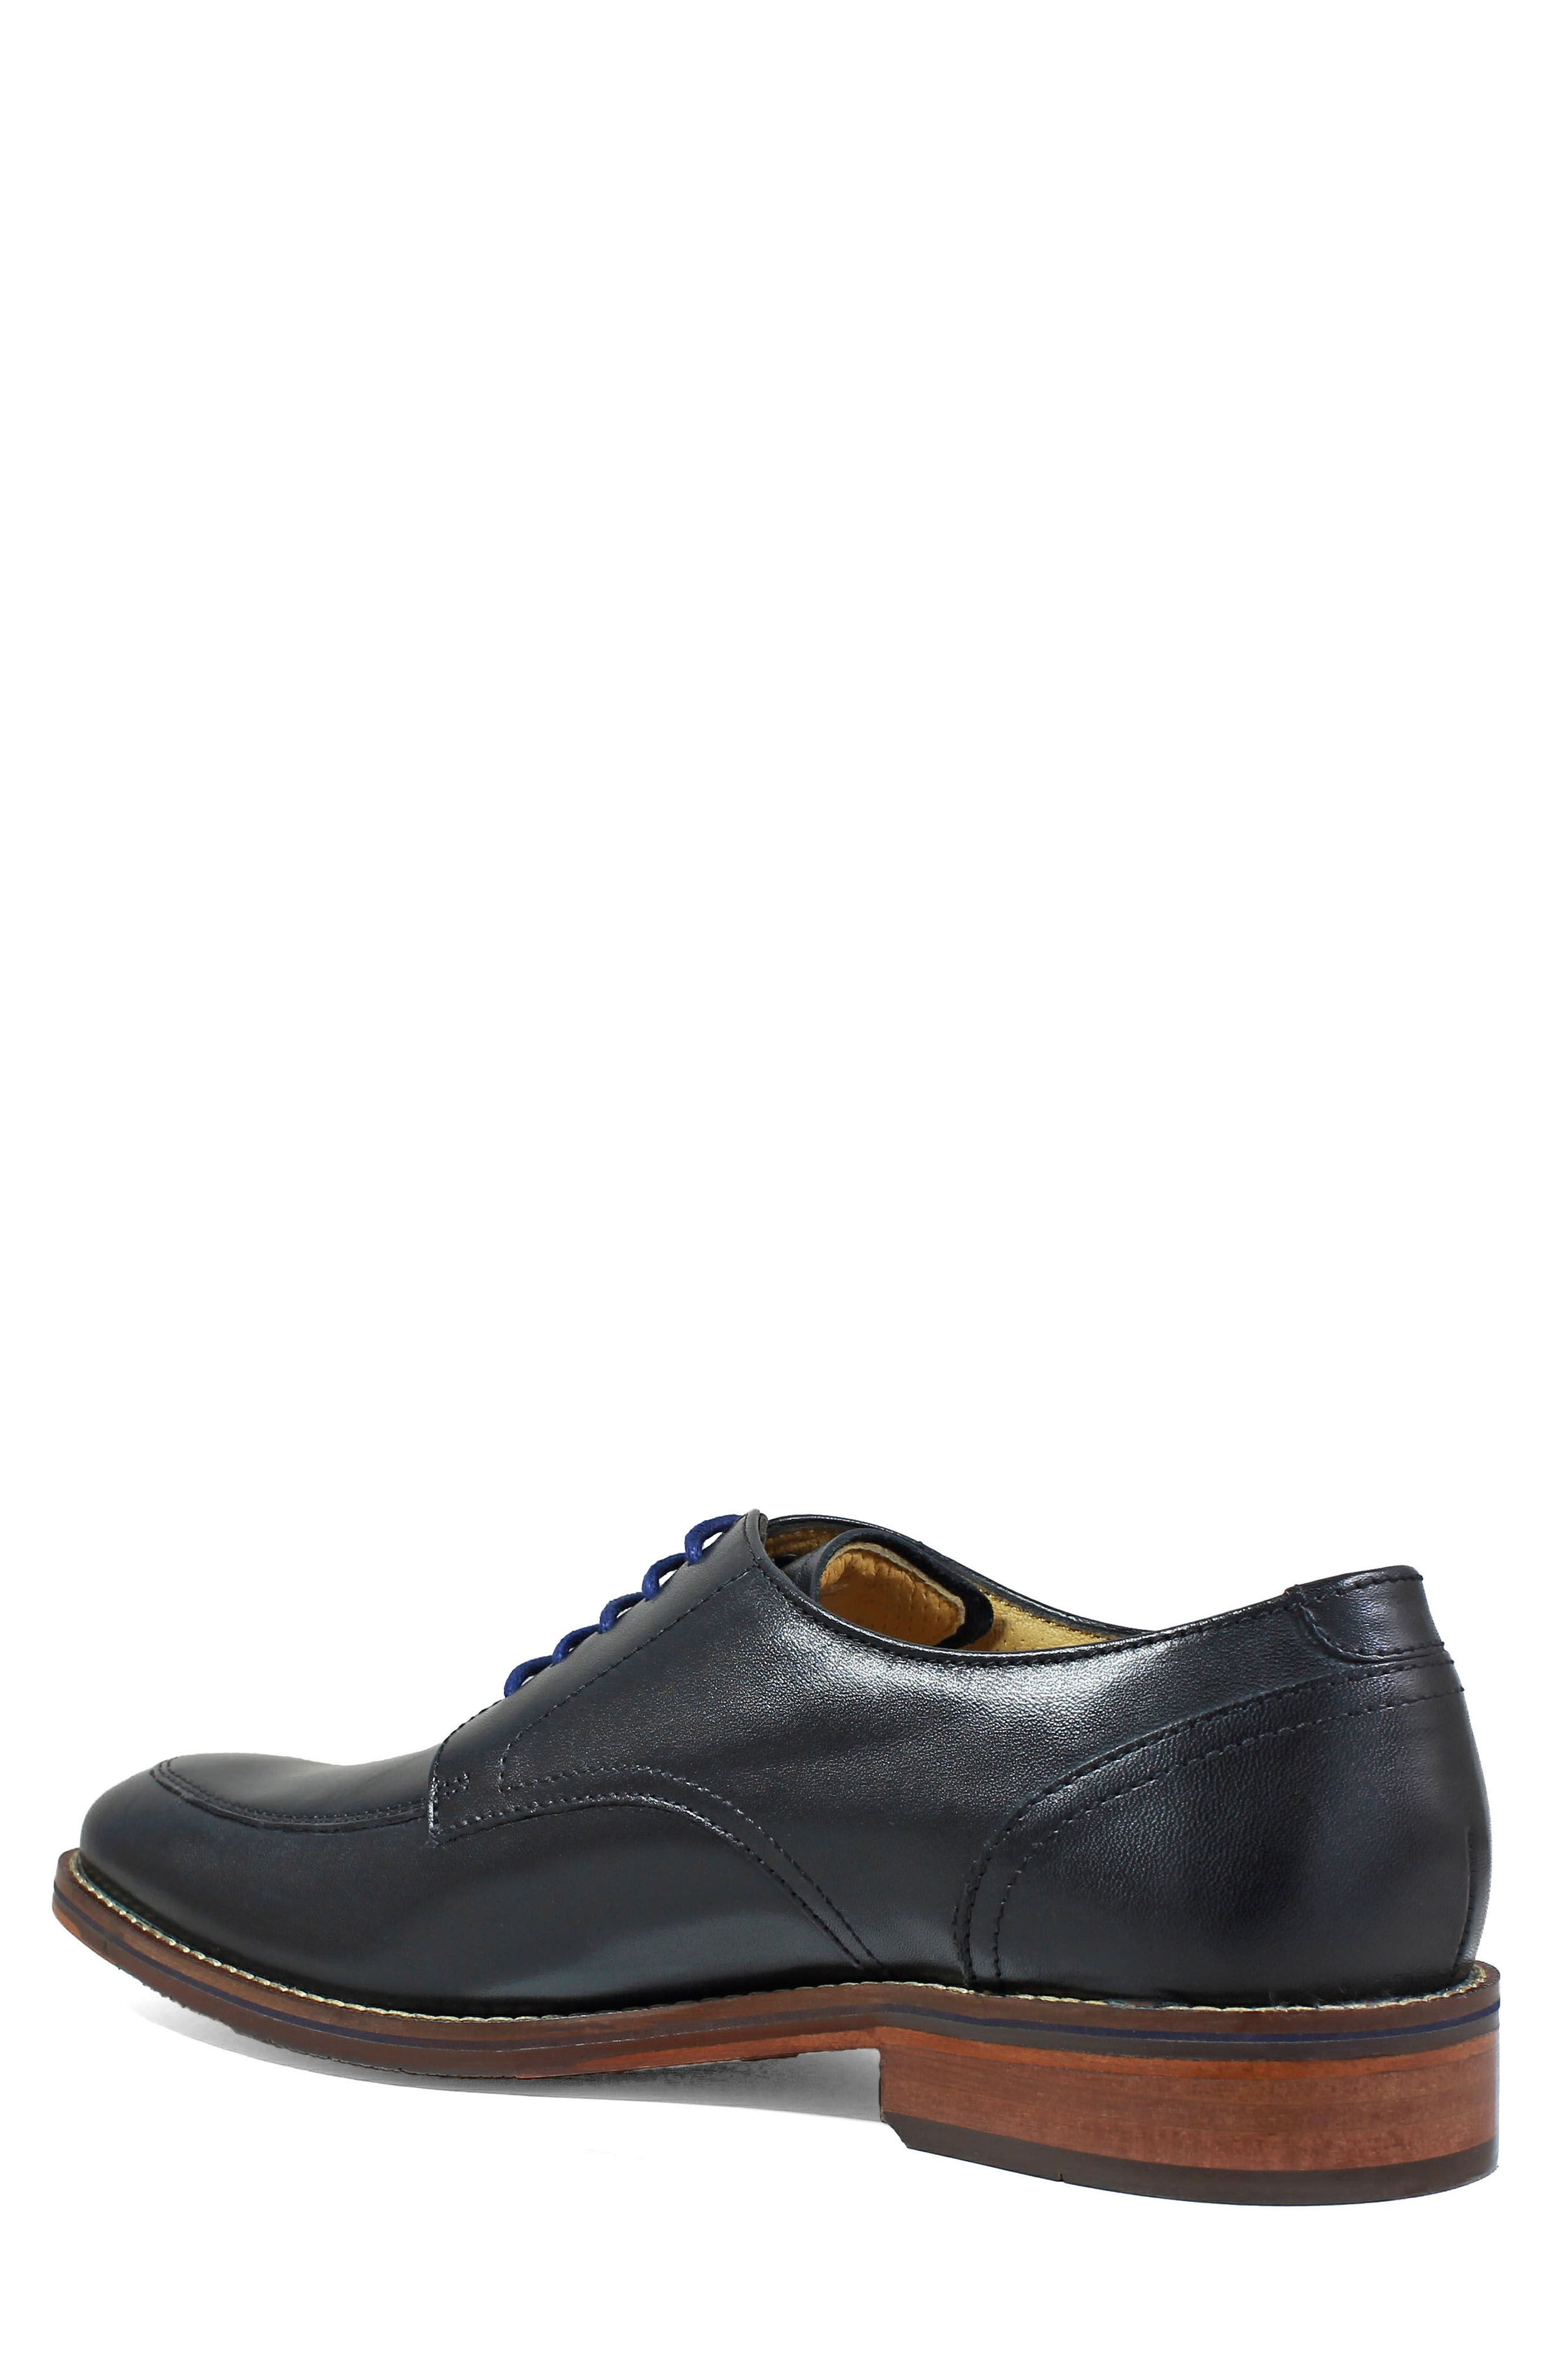 Salerno Apron Toe Derby,                             Alternate thumbnail 2, color,                             BLACK LEATHER